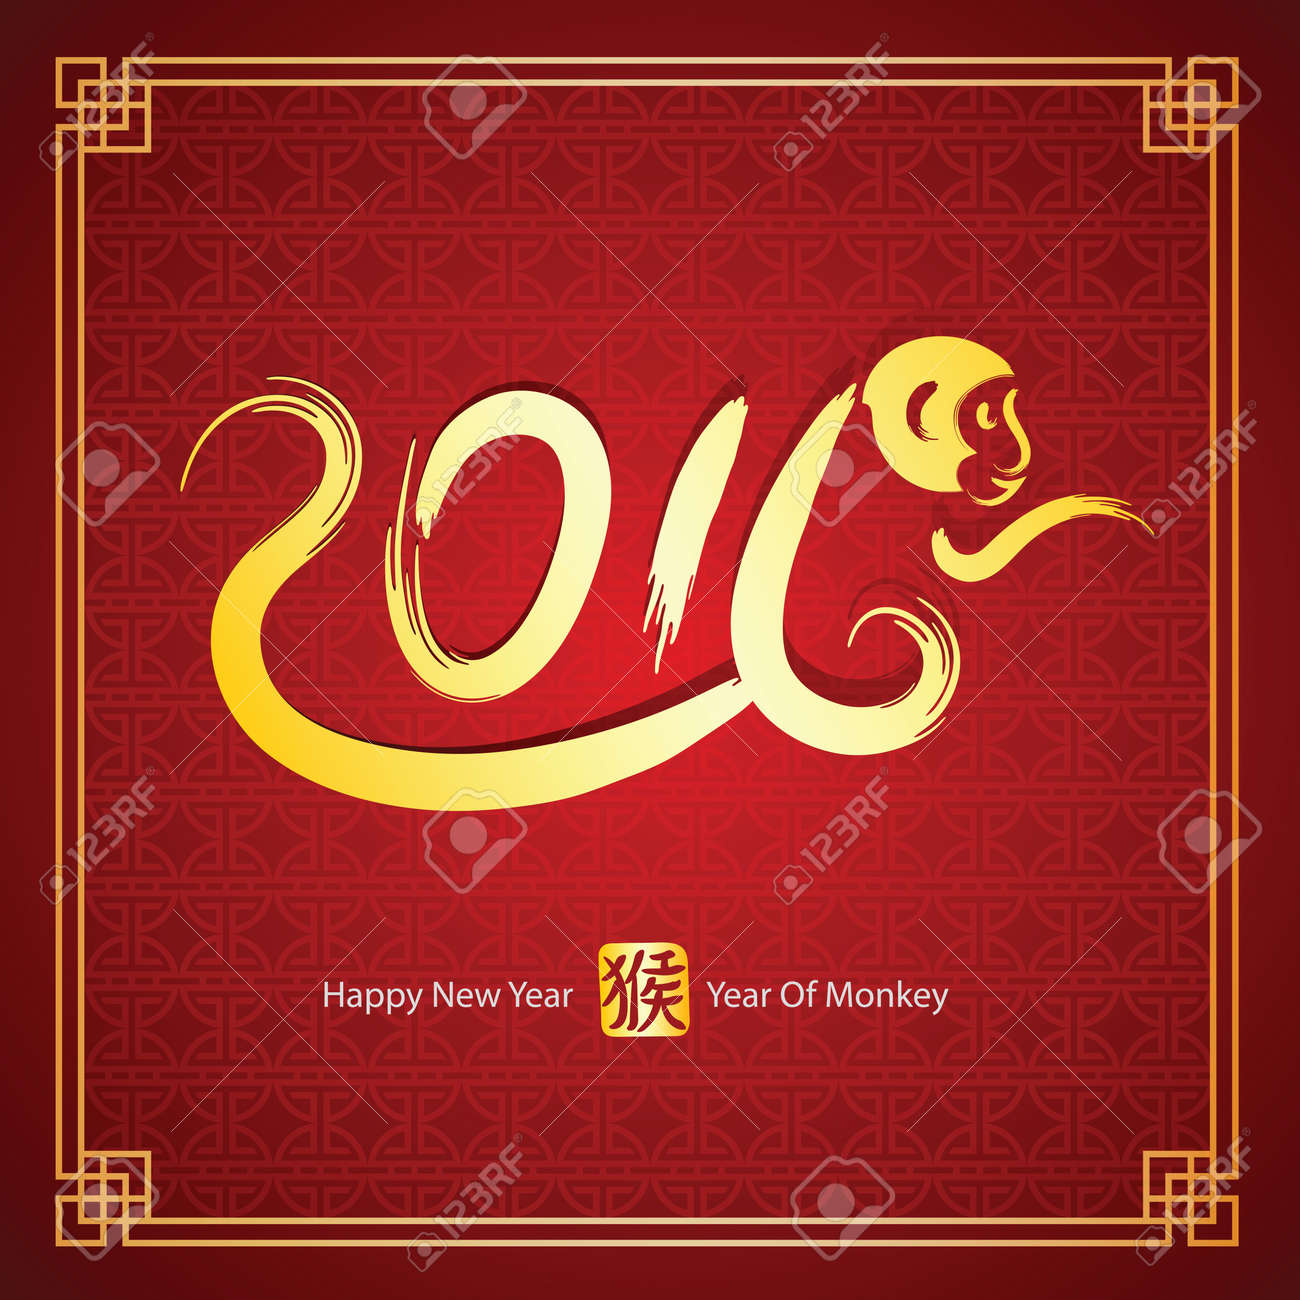 Chinese Calligraphy 2016 - Year of monkey ,vector illustration - 46186075